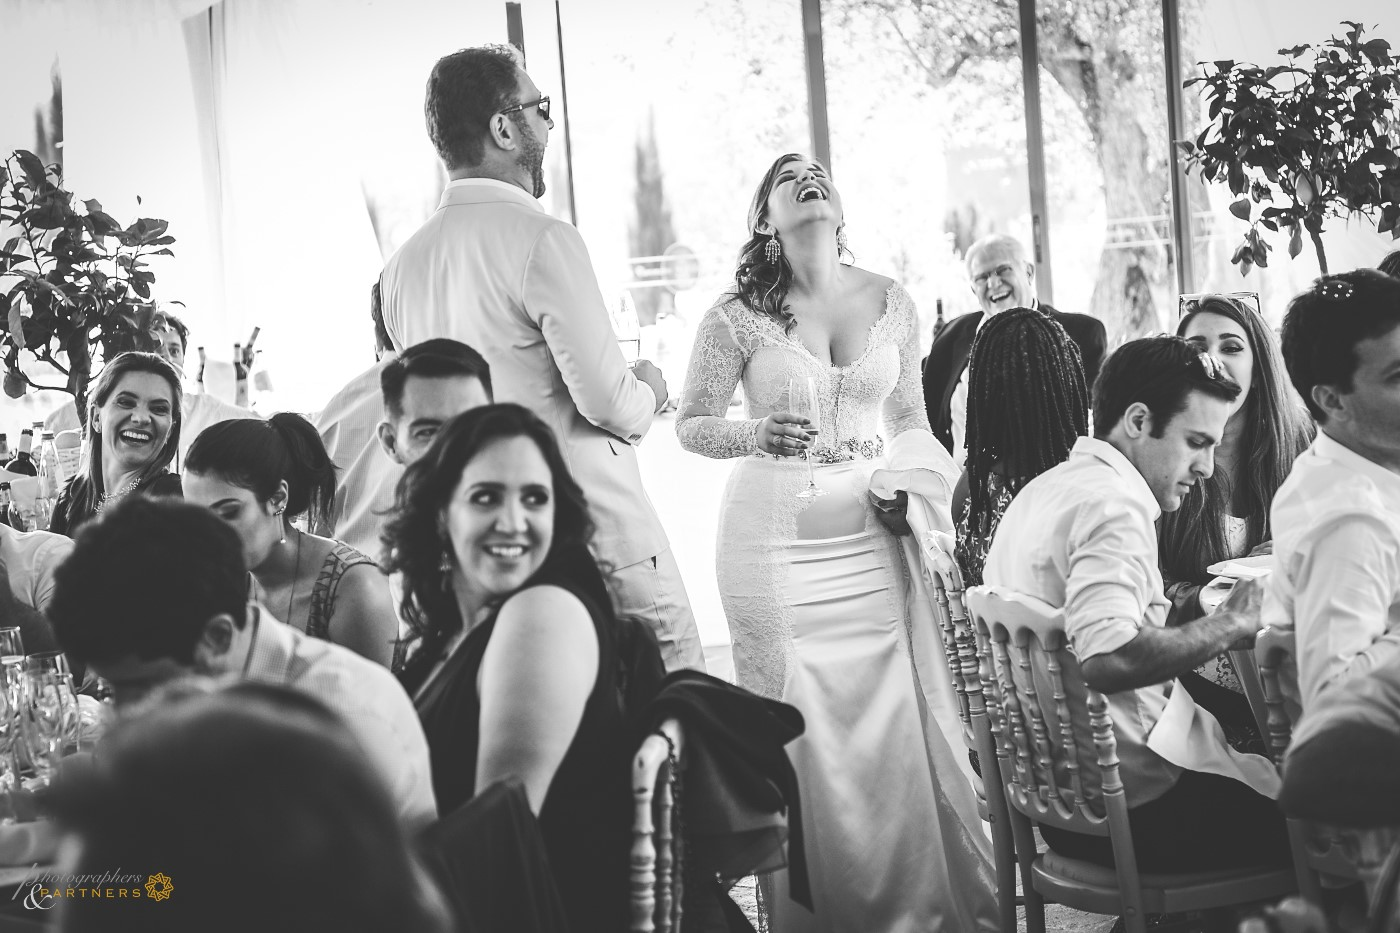 umbria_wedding_photos_19.jpg